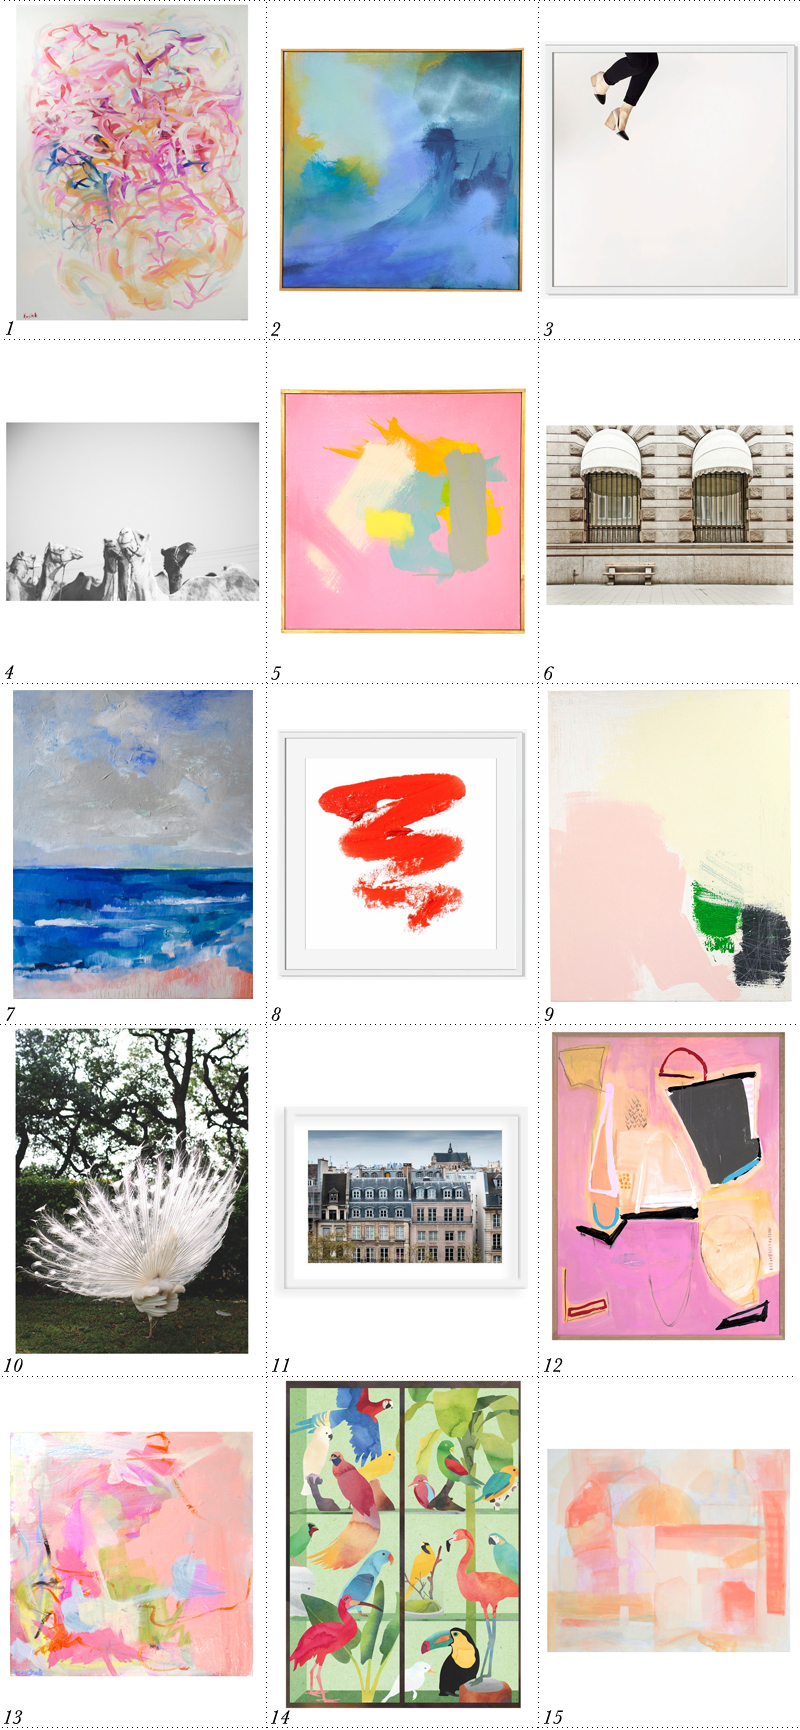 2015 Art Favorites